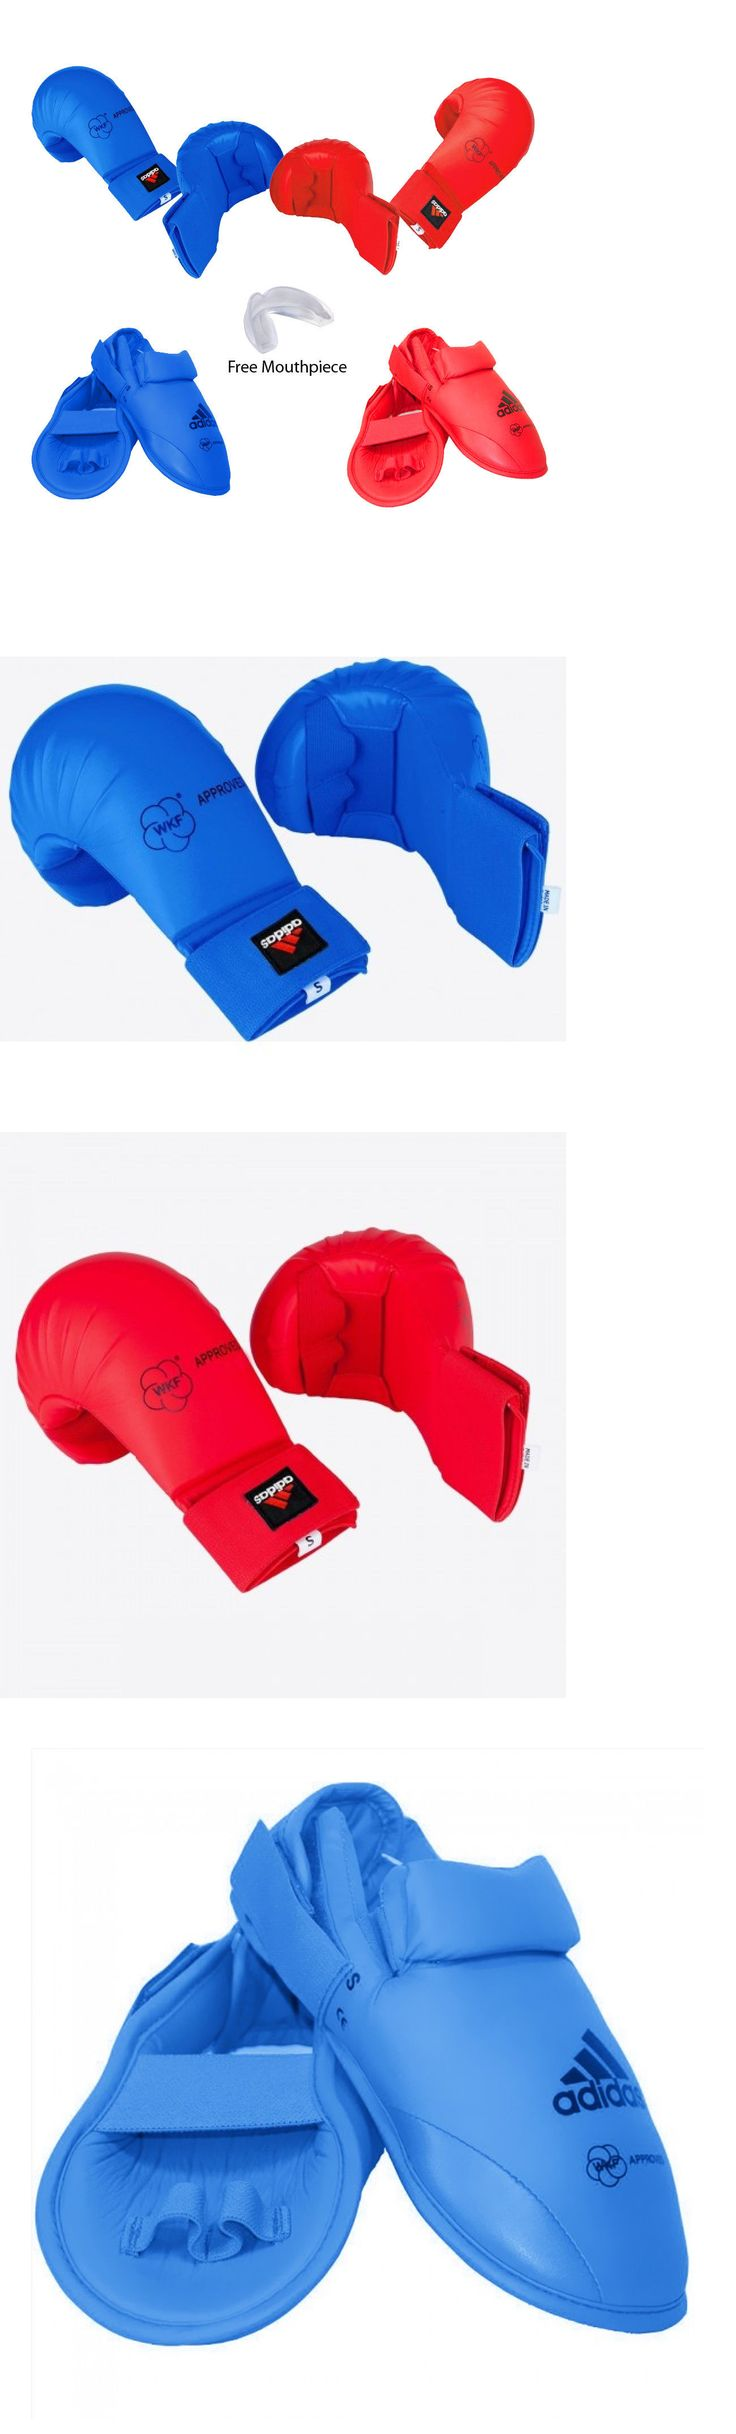 Other Combat Sport Protection 179783: New Adidas Karate Sparring Gear Basic Set Hand, Foot Guard And Mouthpiece-Red,Blue -> BUY IT NOW ONLY: $75.99 on eBay!